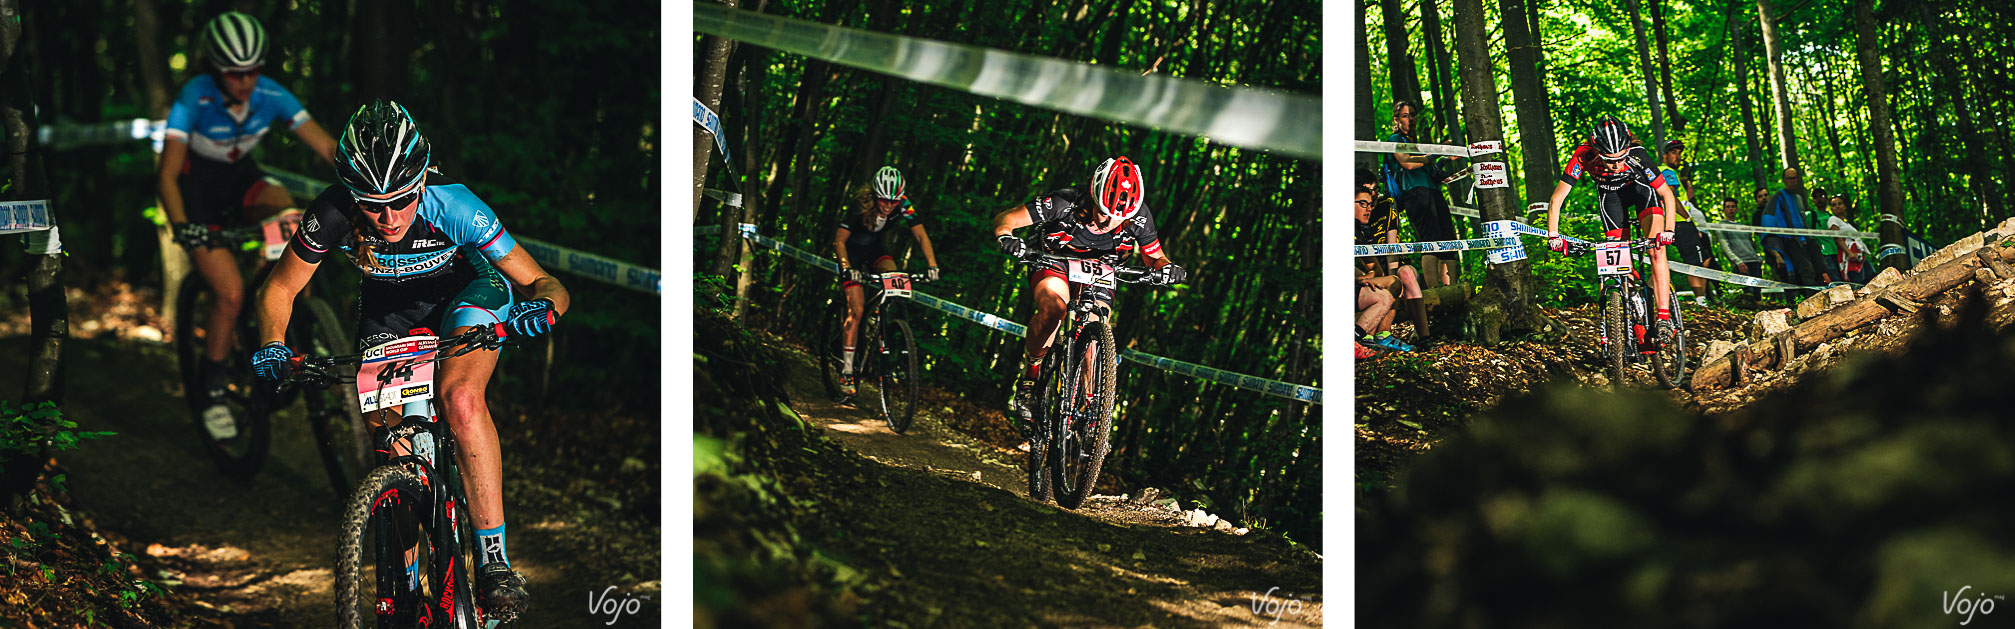 4-World_Cup_Albstadt_2016_Women_U23_Dames_Copyright_OBeart_VojoMag-1